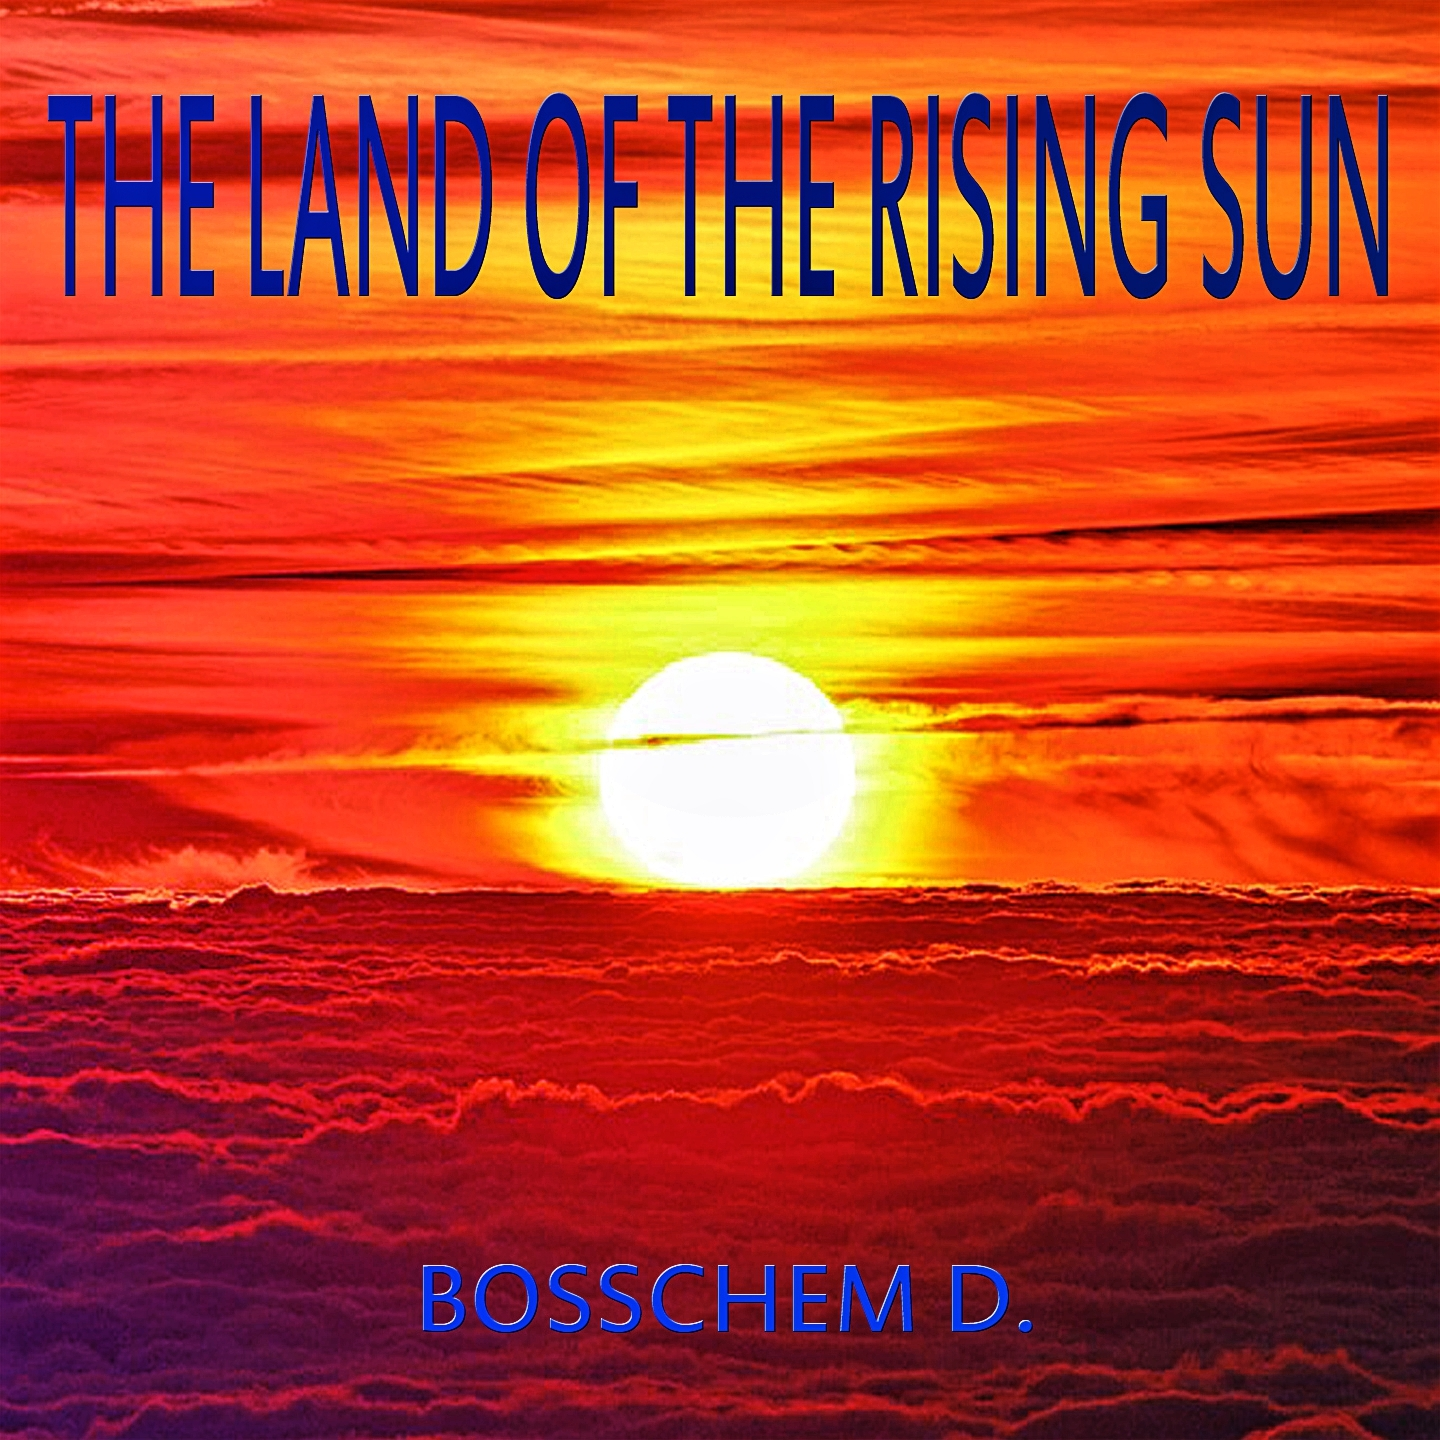 the land of the rising sun Ah, the land of the rising sun ah, the land of the rising sun ah, the land of the rising sun ah, the land of the rising sun shine on was our battle cry hand in hand.